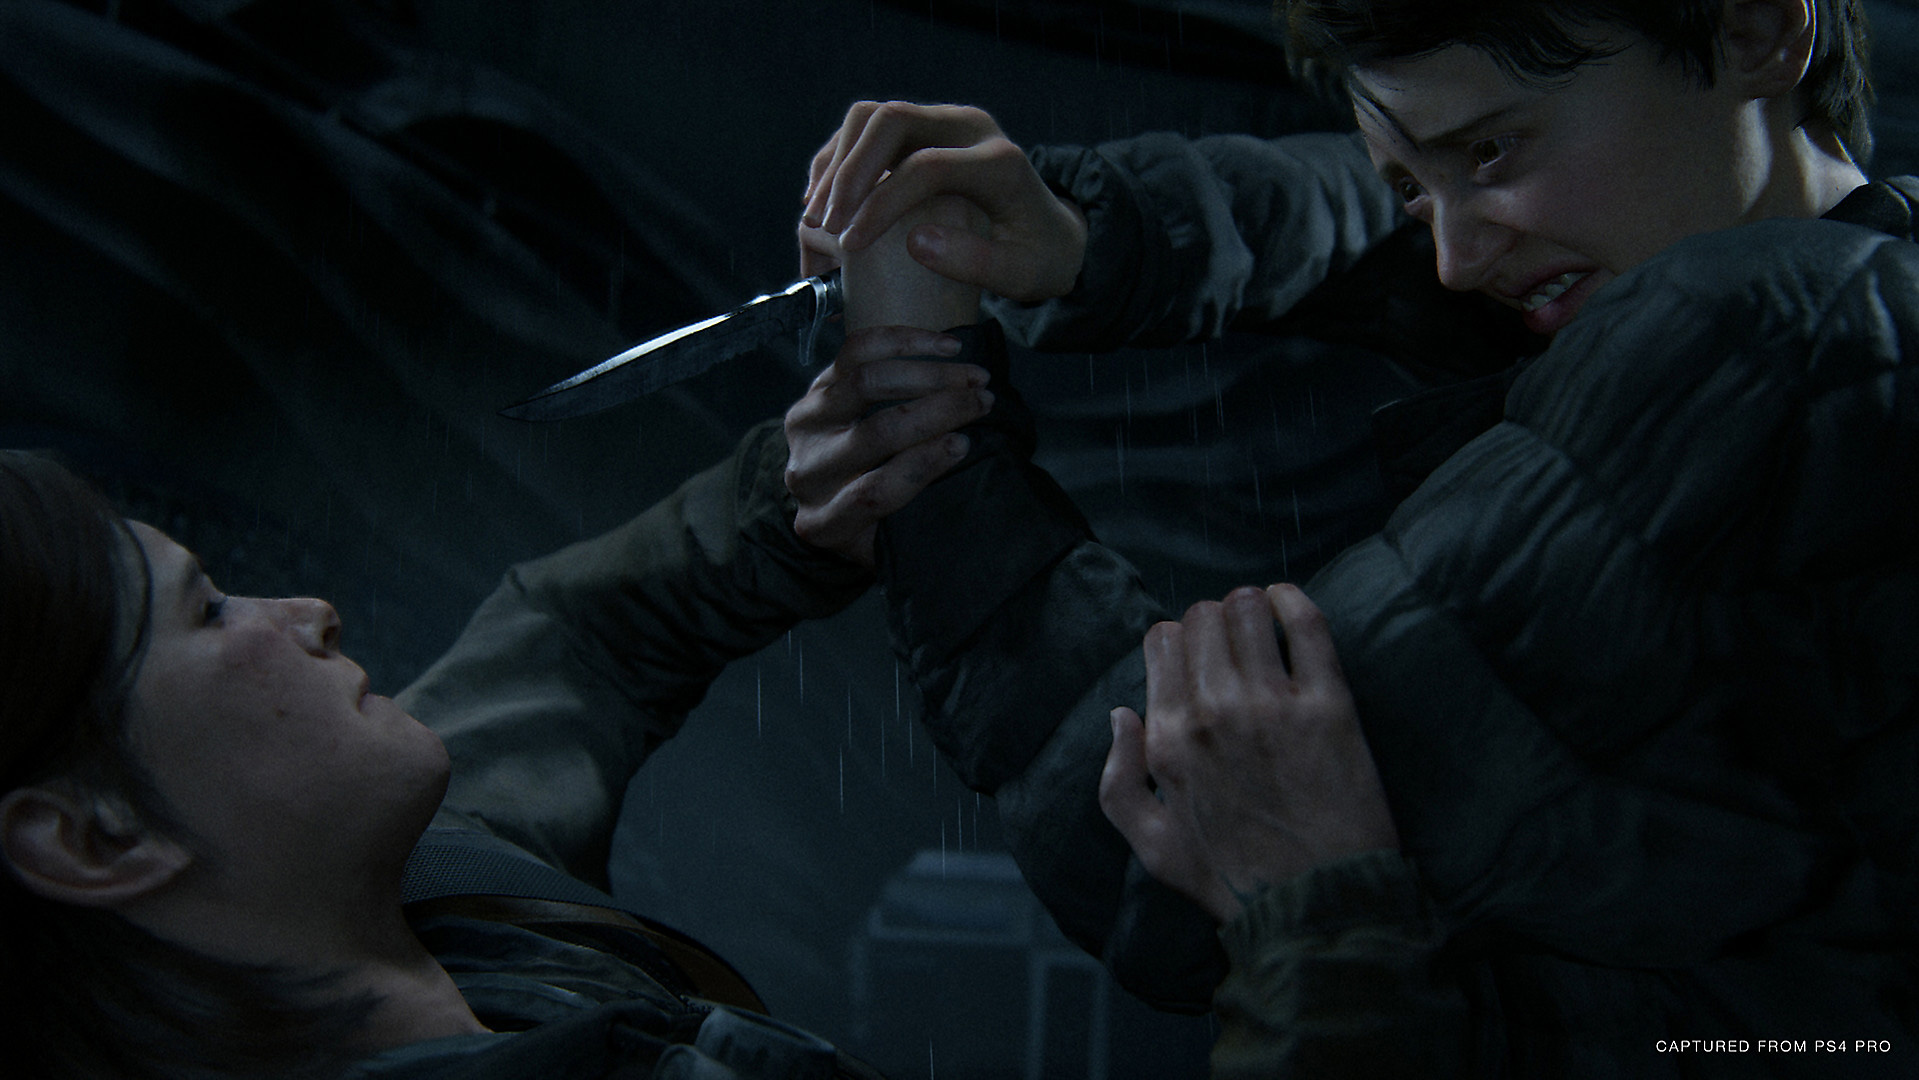 Naughty Dog sets the stage for The Last of Us Part II in 'spoiler-free' video series screenshot